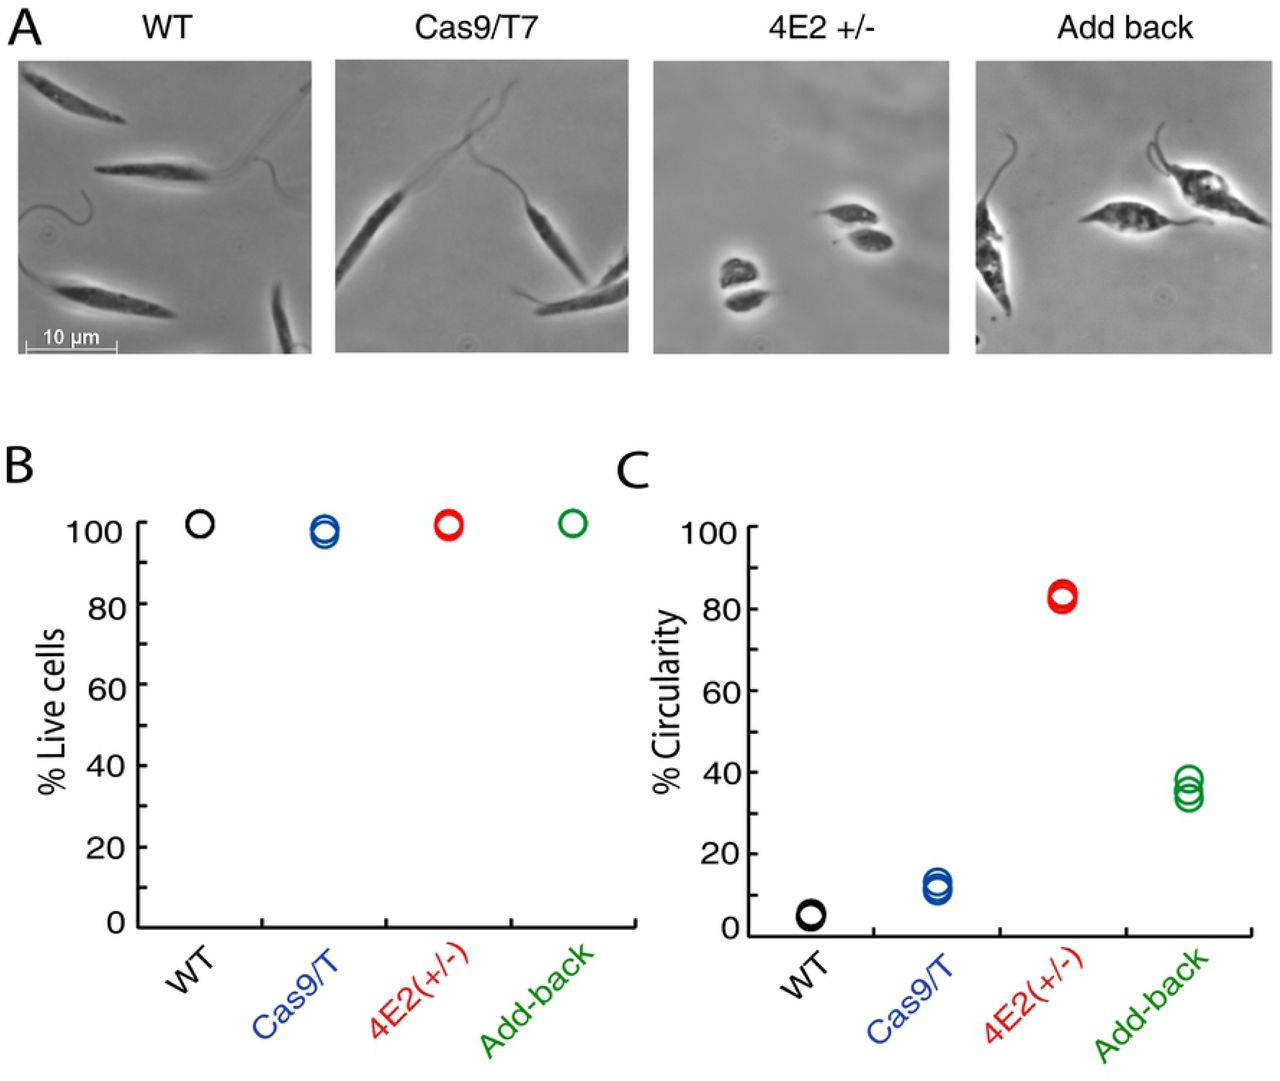 The LeishIF4E2(+/-) deletion mutant shows altered promastigote morphology. (A) Mid-log phase (Day 2) promastigotes of wild type, Cas9/T7 expressers, LeishIF4E2(+/-) cells, and LeishIF4E2 add-back cells were fixed with 2% paraformaldehyde and visualized by phase contrast microscopy at 100x magnification. Wild type (WT), Cas9/T7 expressing cells showed normal promastigote morphology while LeishIF4E2(+/-) became round with reduced flagellar length. This altered phenotype was reverted back to normal in LeishIF4E2 add-back cells. (B) All the cell lines were stained with 20 µg/mL <t>propidium</t> iodide (PI) for 30 minutes and cell viability was analyzed using the ImageStream X Mark II Imaging flow cytometer (Millipore). 20,000 cells were analyzed for each sample and percent viable cells were determined. (C) .The circularity of single, viable and focused cells from each of the cell lines was quantified using flow cytometry and shown as percentage of the total number of cells measured. Data from three independent experiments are shown.